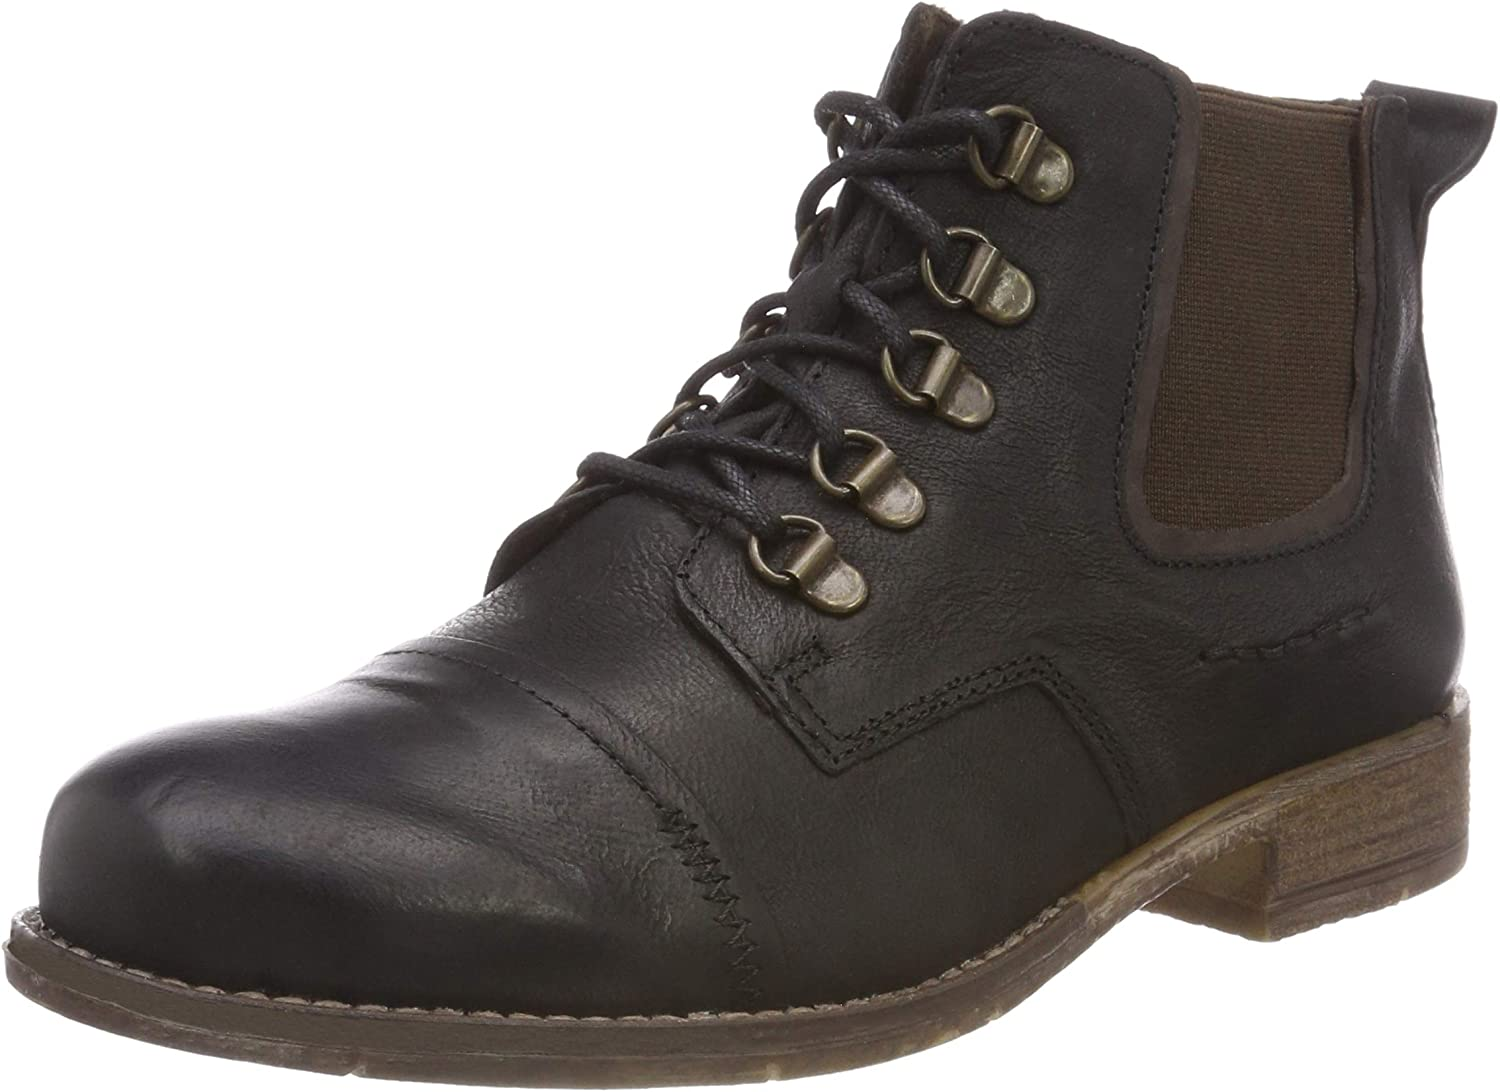 Josef Seibel Women's Sienna 09 Ankle Boots: Amazon.co.uk